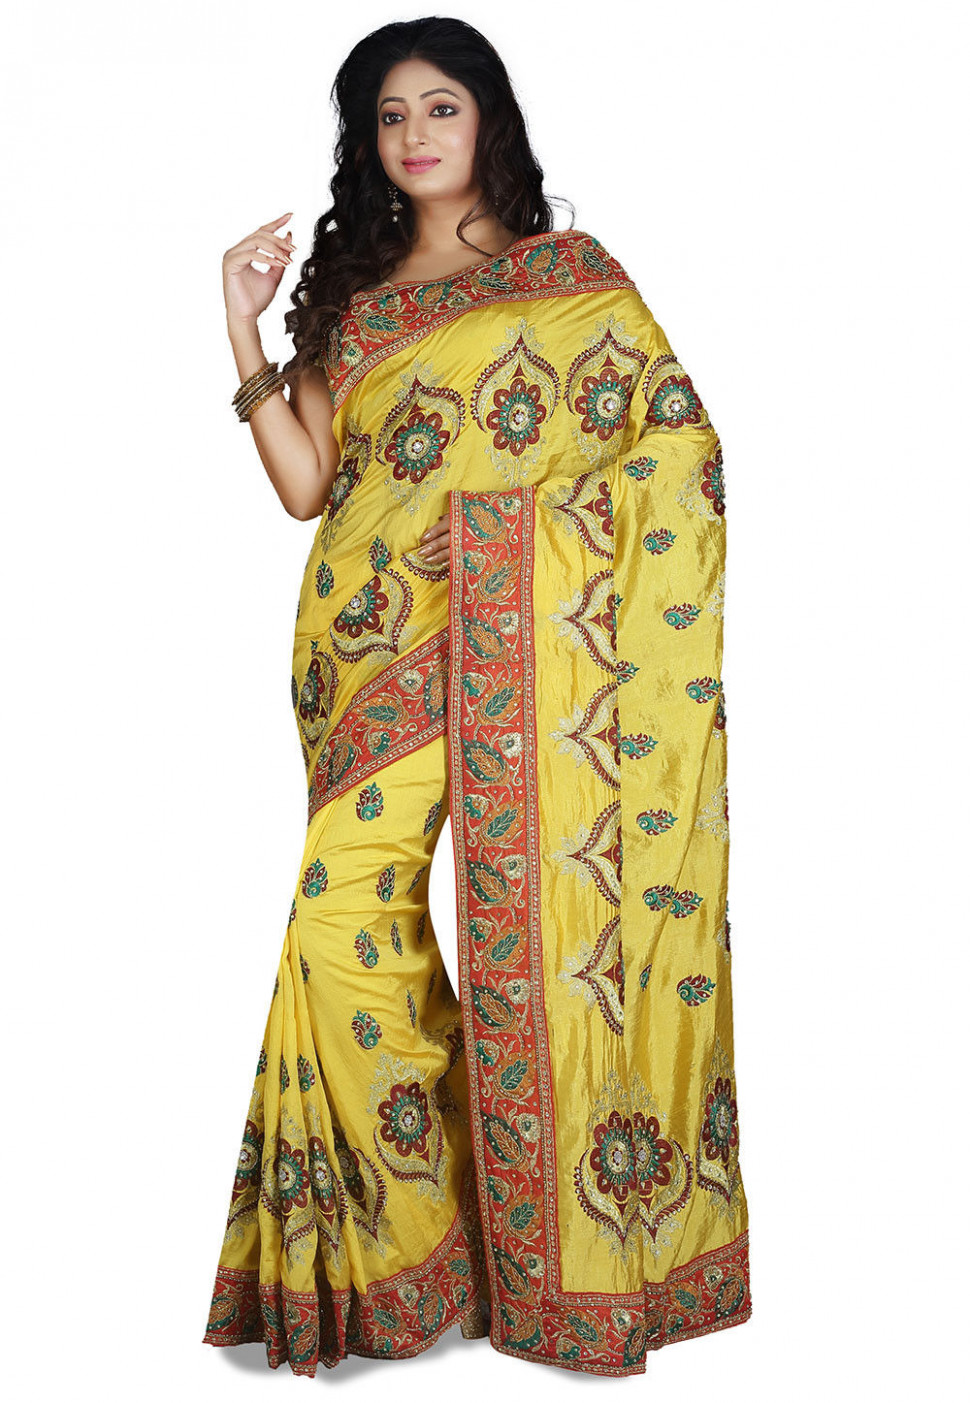 Embroidered Dupion Silk Saree in Yellow : SUD1621